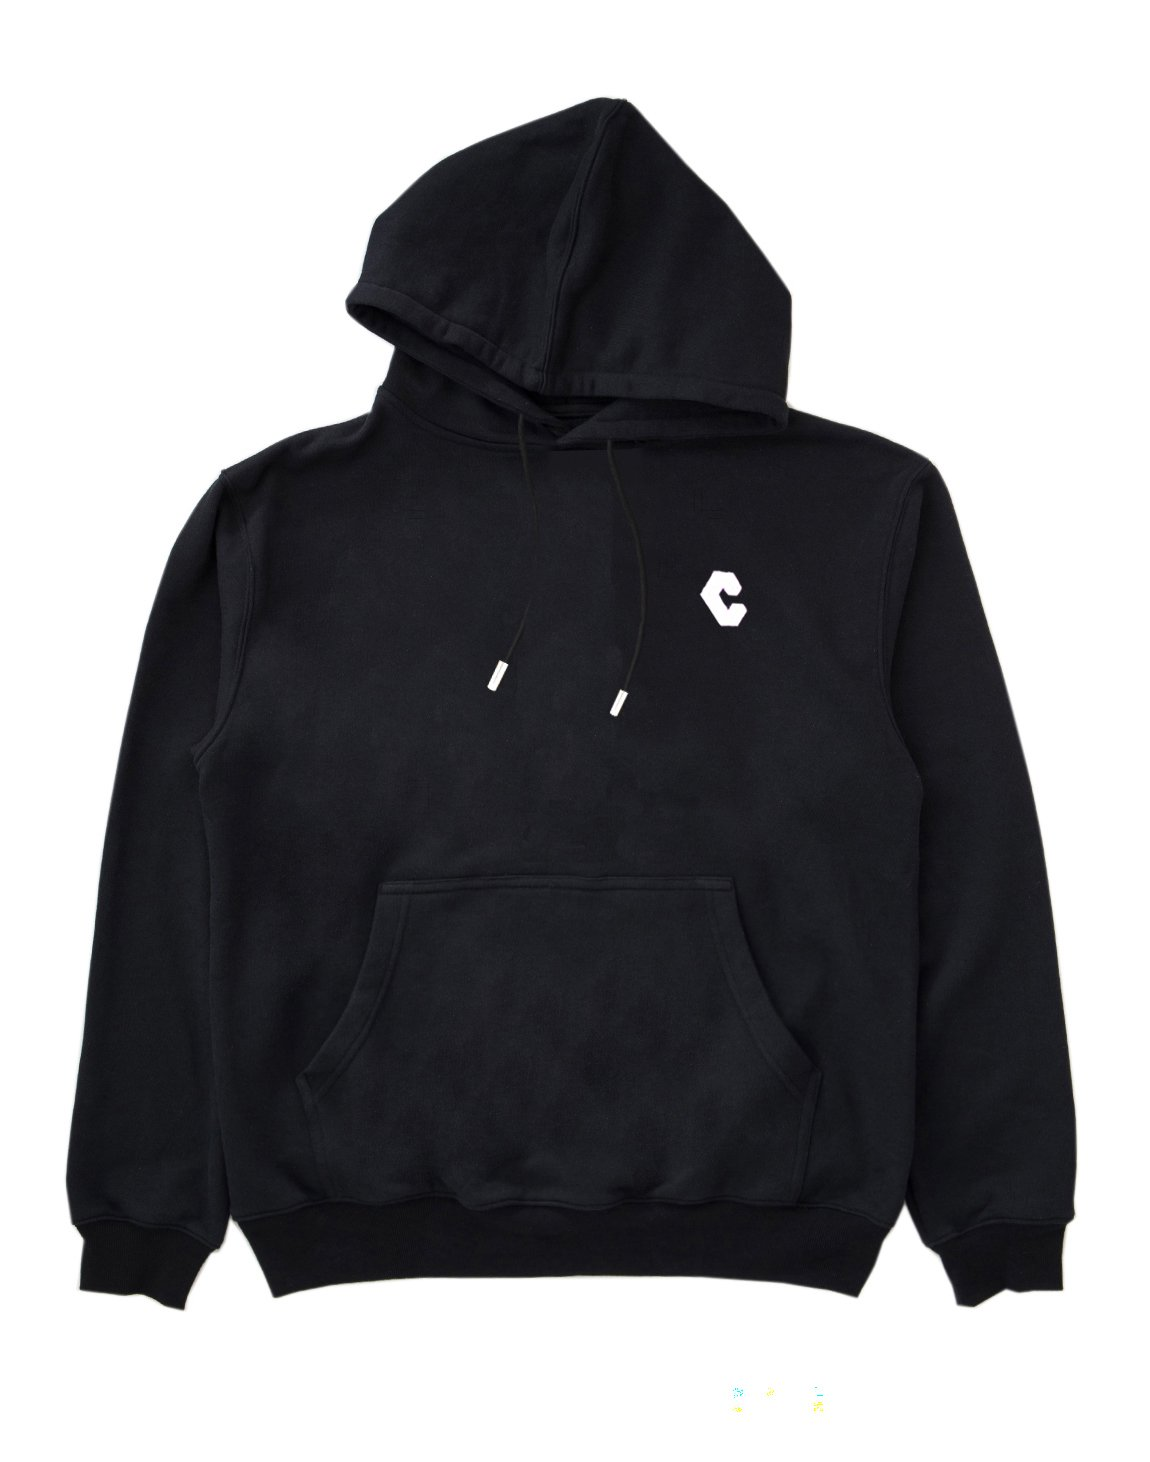 <img class='new_mark_img1' src='https://img.shop-pro.jp/img/new/icons55.gif' style='border:none;display:inline;margin:0px;padding:0px;width:auto;' />CRNS  BACK BIG LOGO HOODY【BLACK】